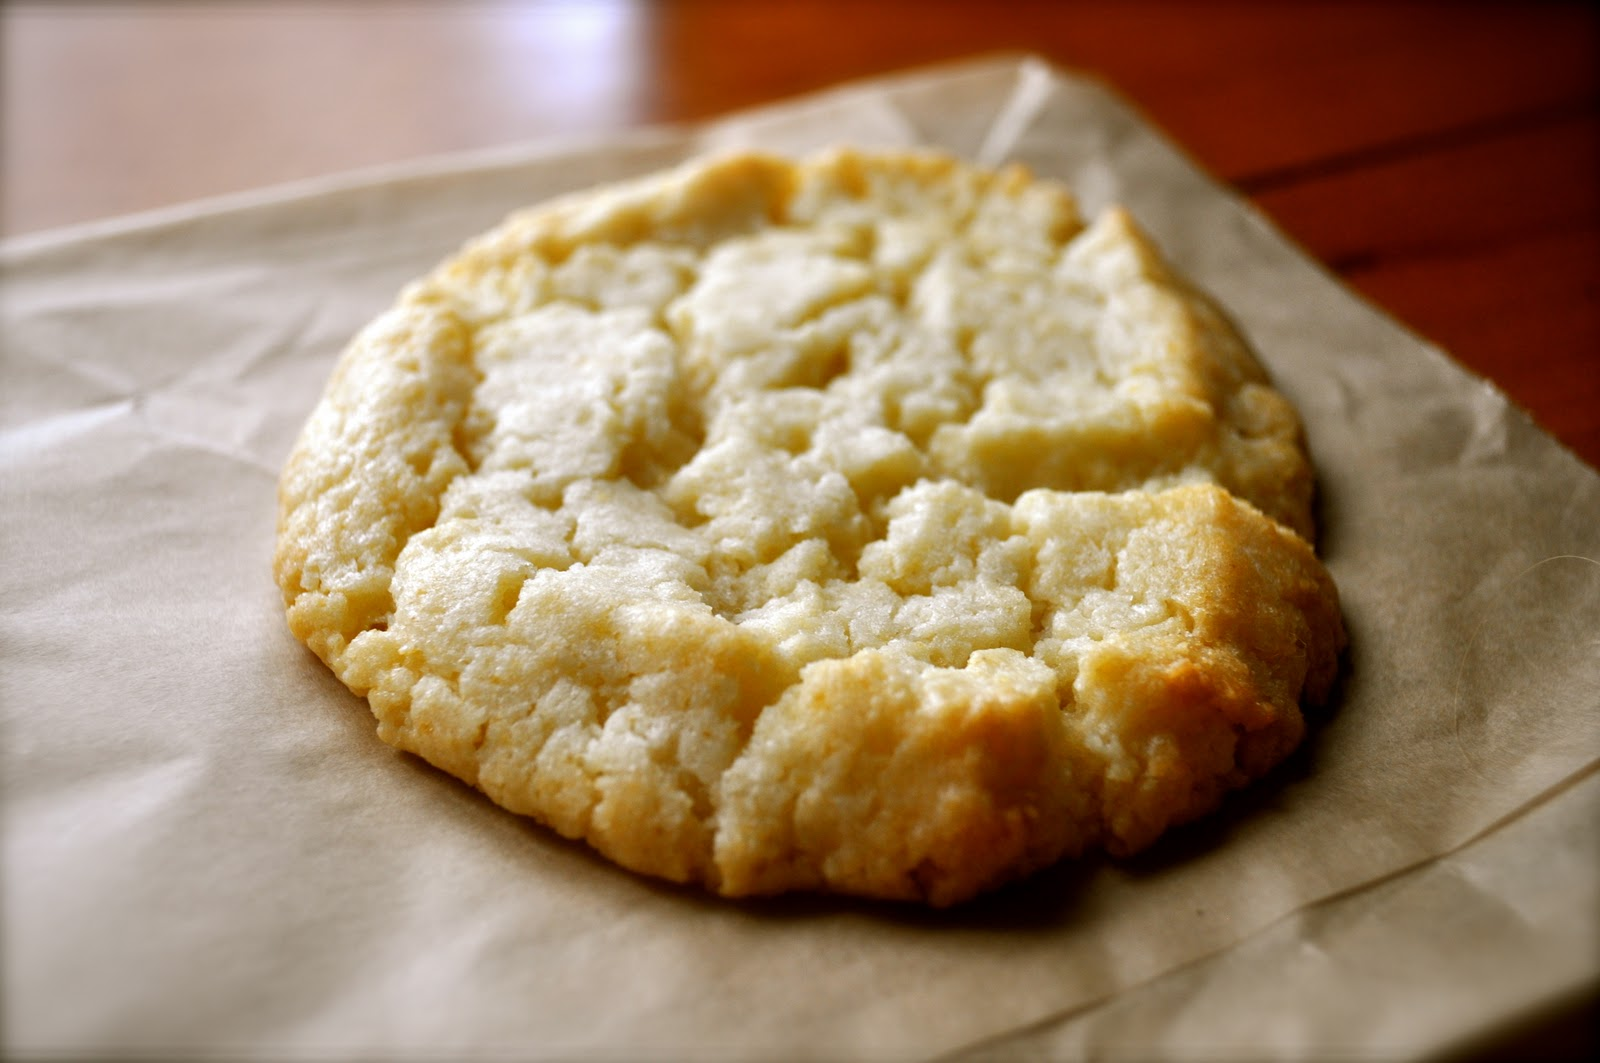 THE BEAUTY OF LIFE: Lemon Cream Cheese Cookies